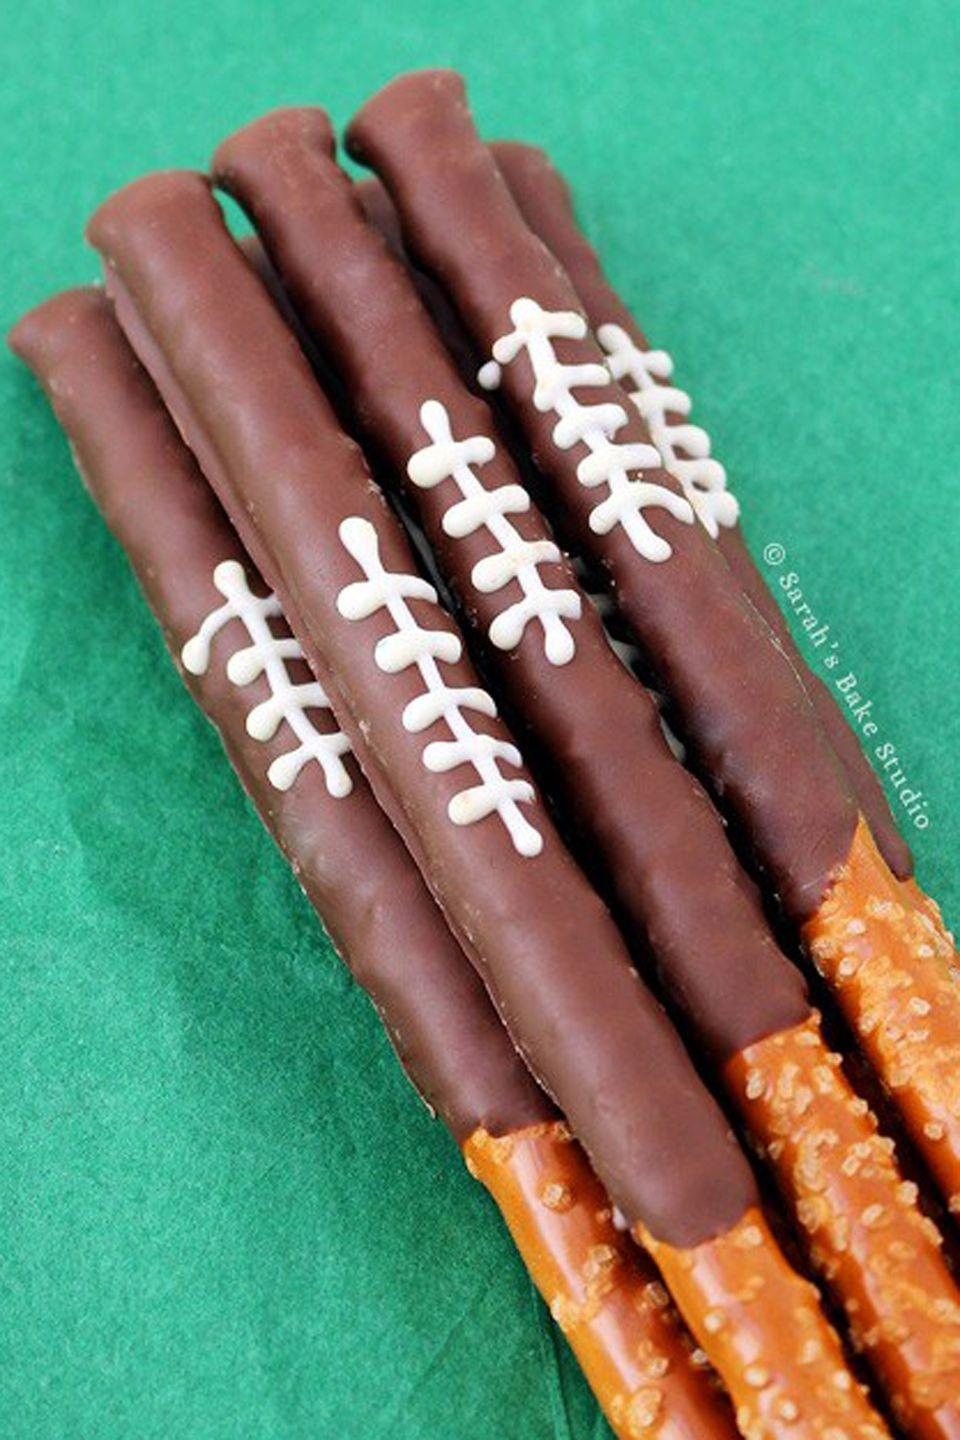 """<p>You won't be able to have just one of these salty, sweet pretzels.</p><p><strong>Get the recipe at <a href=""""http://sarahsbakestudio.com/chocolate-football-pretzel-rods/"""" rel=""""nofollow noopener"""" target=""""_blank"""" data-ylk=""""slk:Sarah's Baking Studio"""" class=""""link rapid-noclick-resp"""">Sarah's Baking Studio</a>.</strong></p>"""